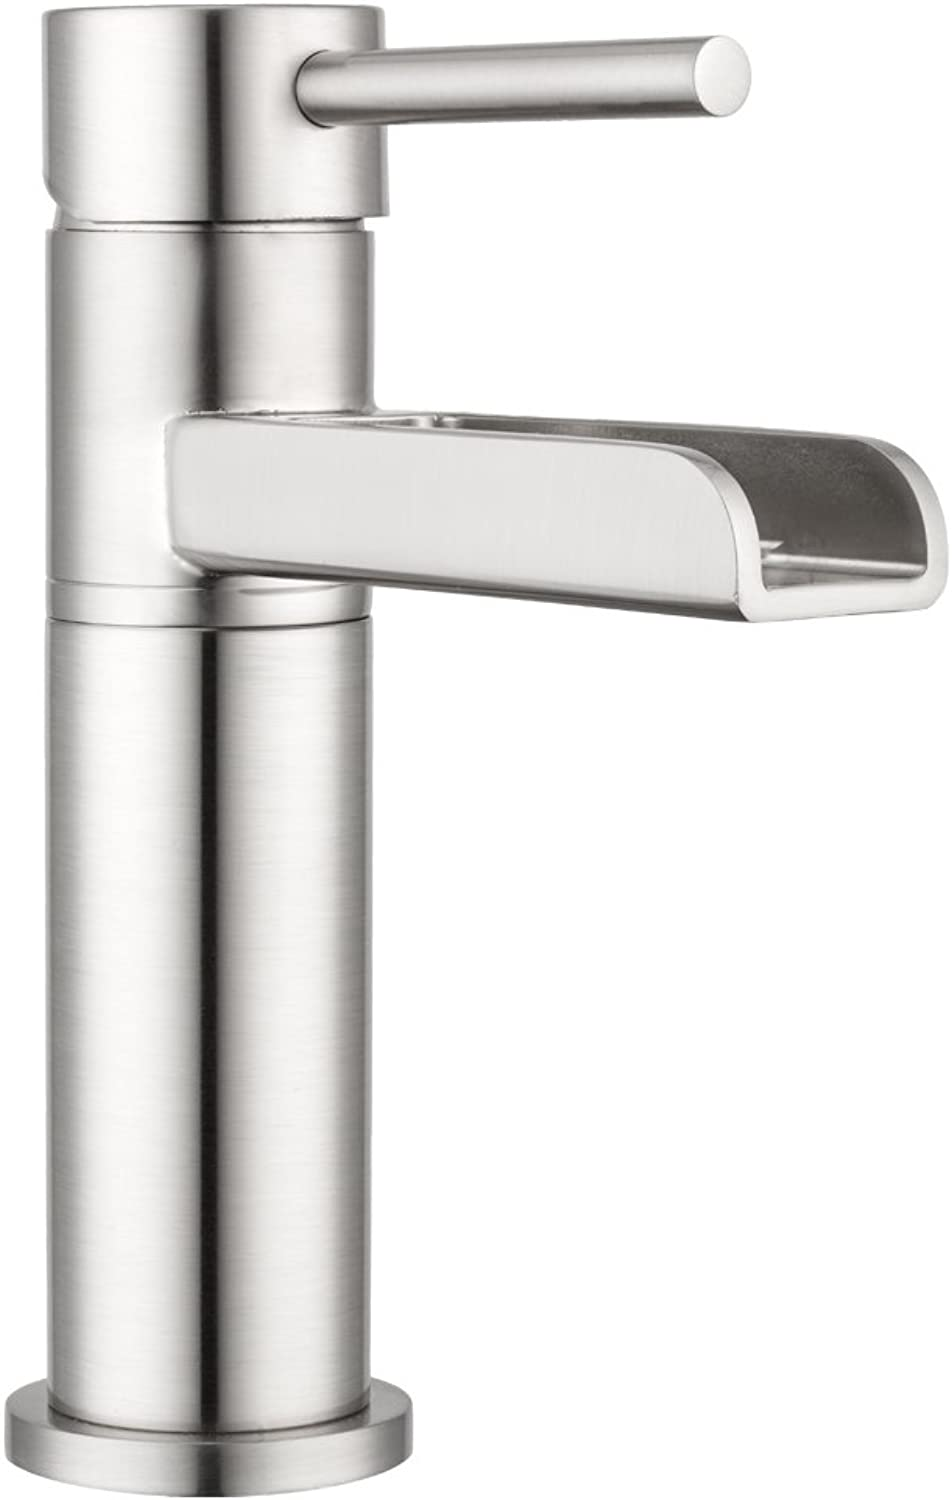 Lakewood Waterfall Single-Lever Bathroom Faucet by Pacific Bay (Brushed Satin Nickel) - Features a Multi-Tiered Cascading Waterfall - New 2019 Model